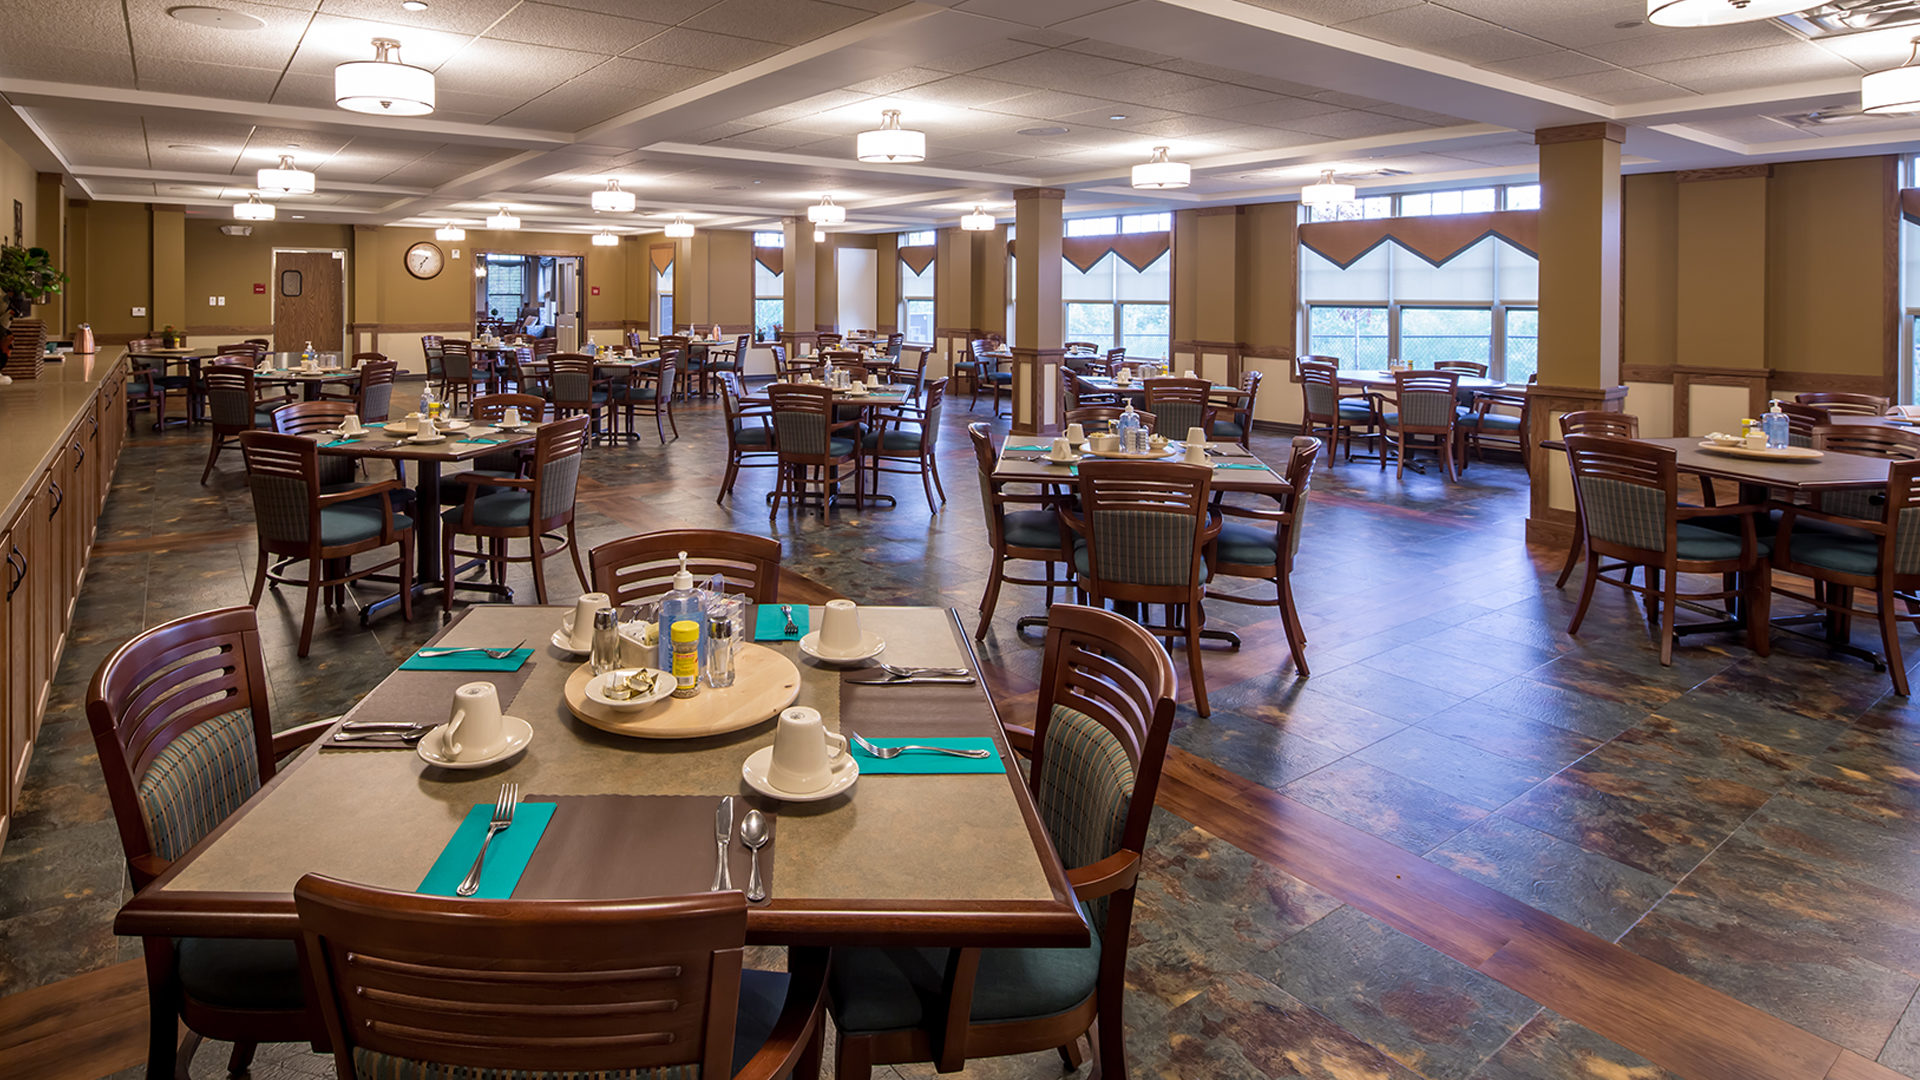 Ebenezer Arbors at Ridges Senior Assisted Living Interior Cafeteria Dining Area